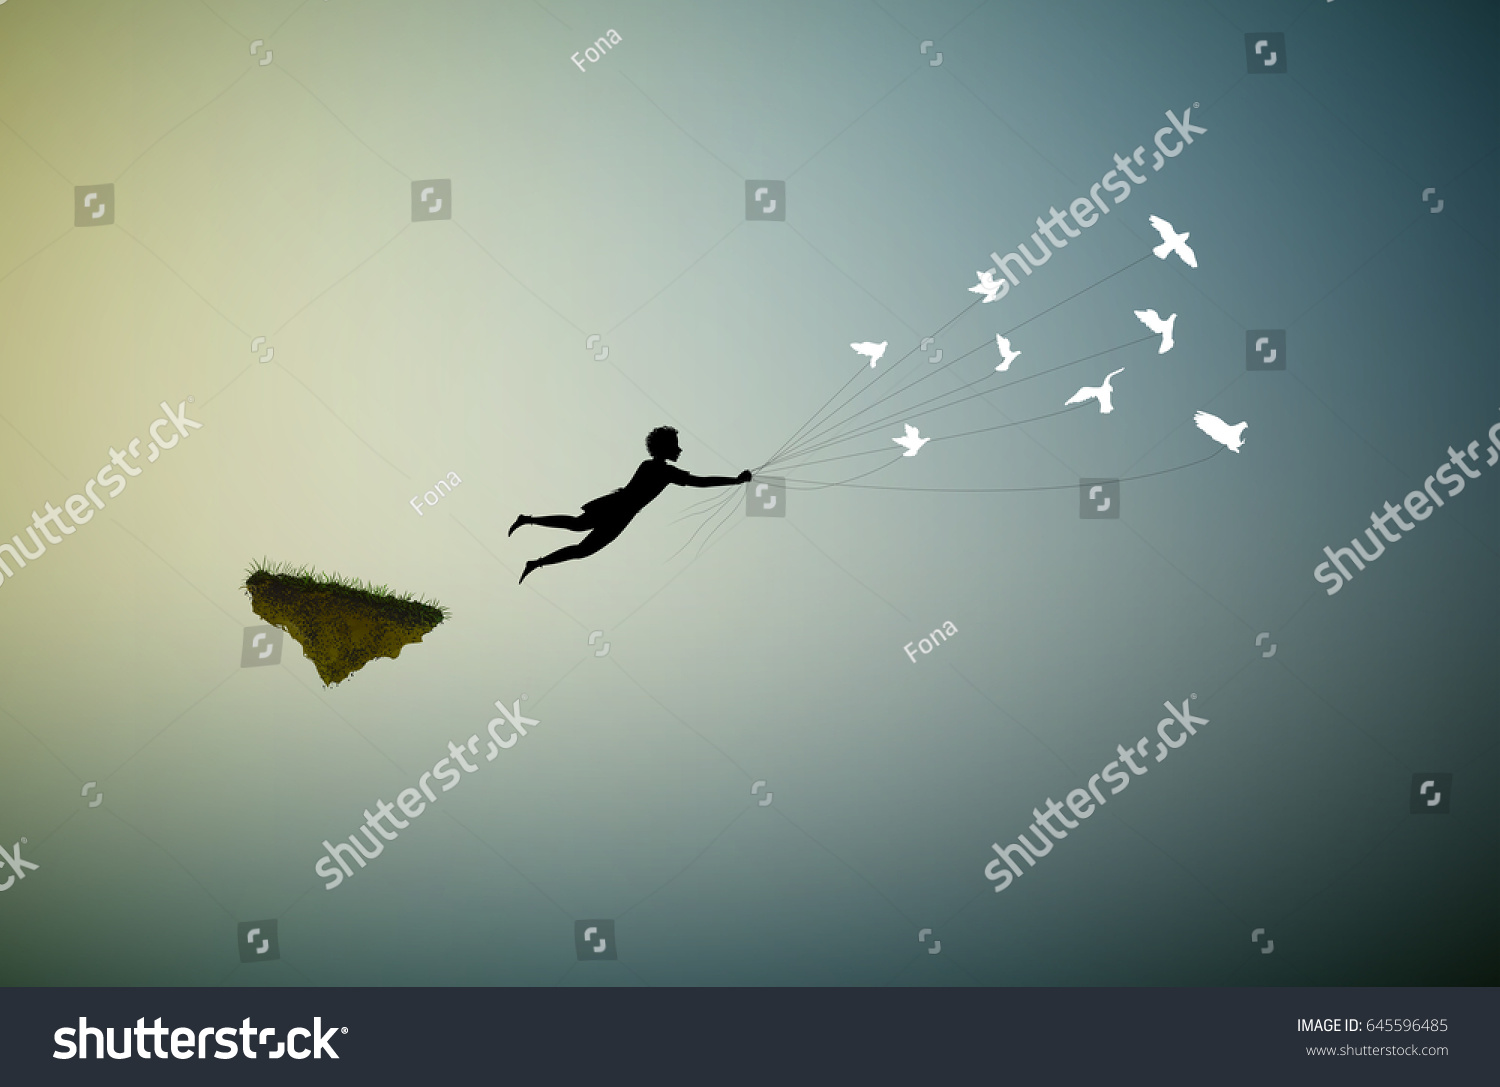 Why dream of flying